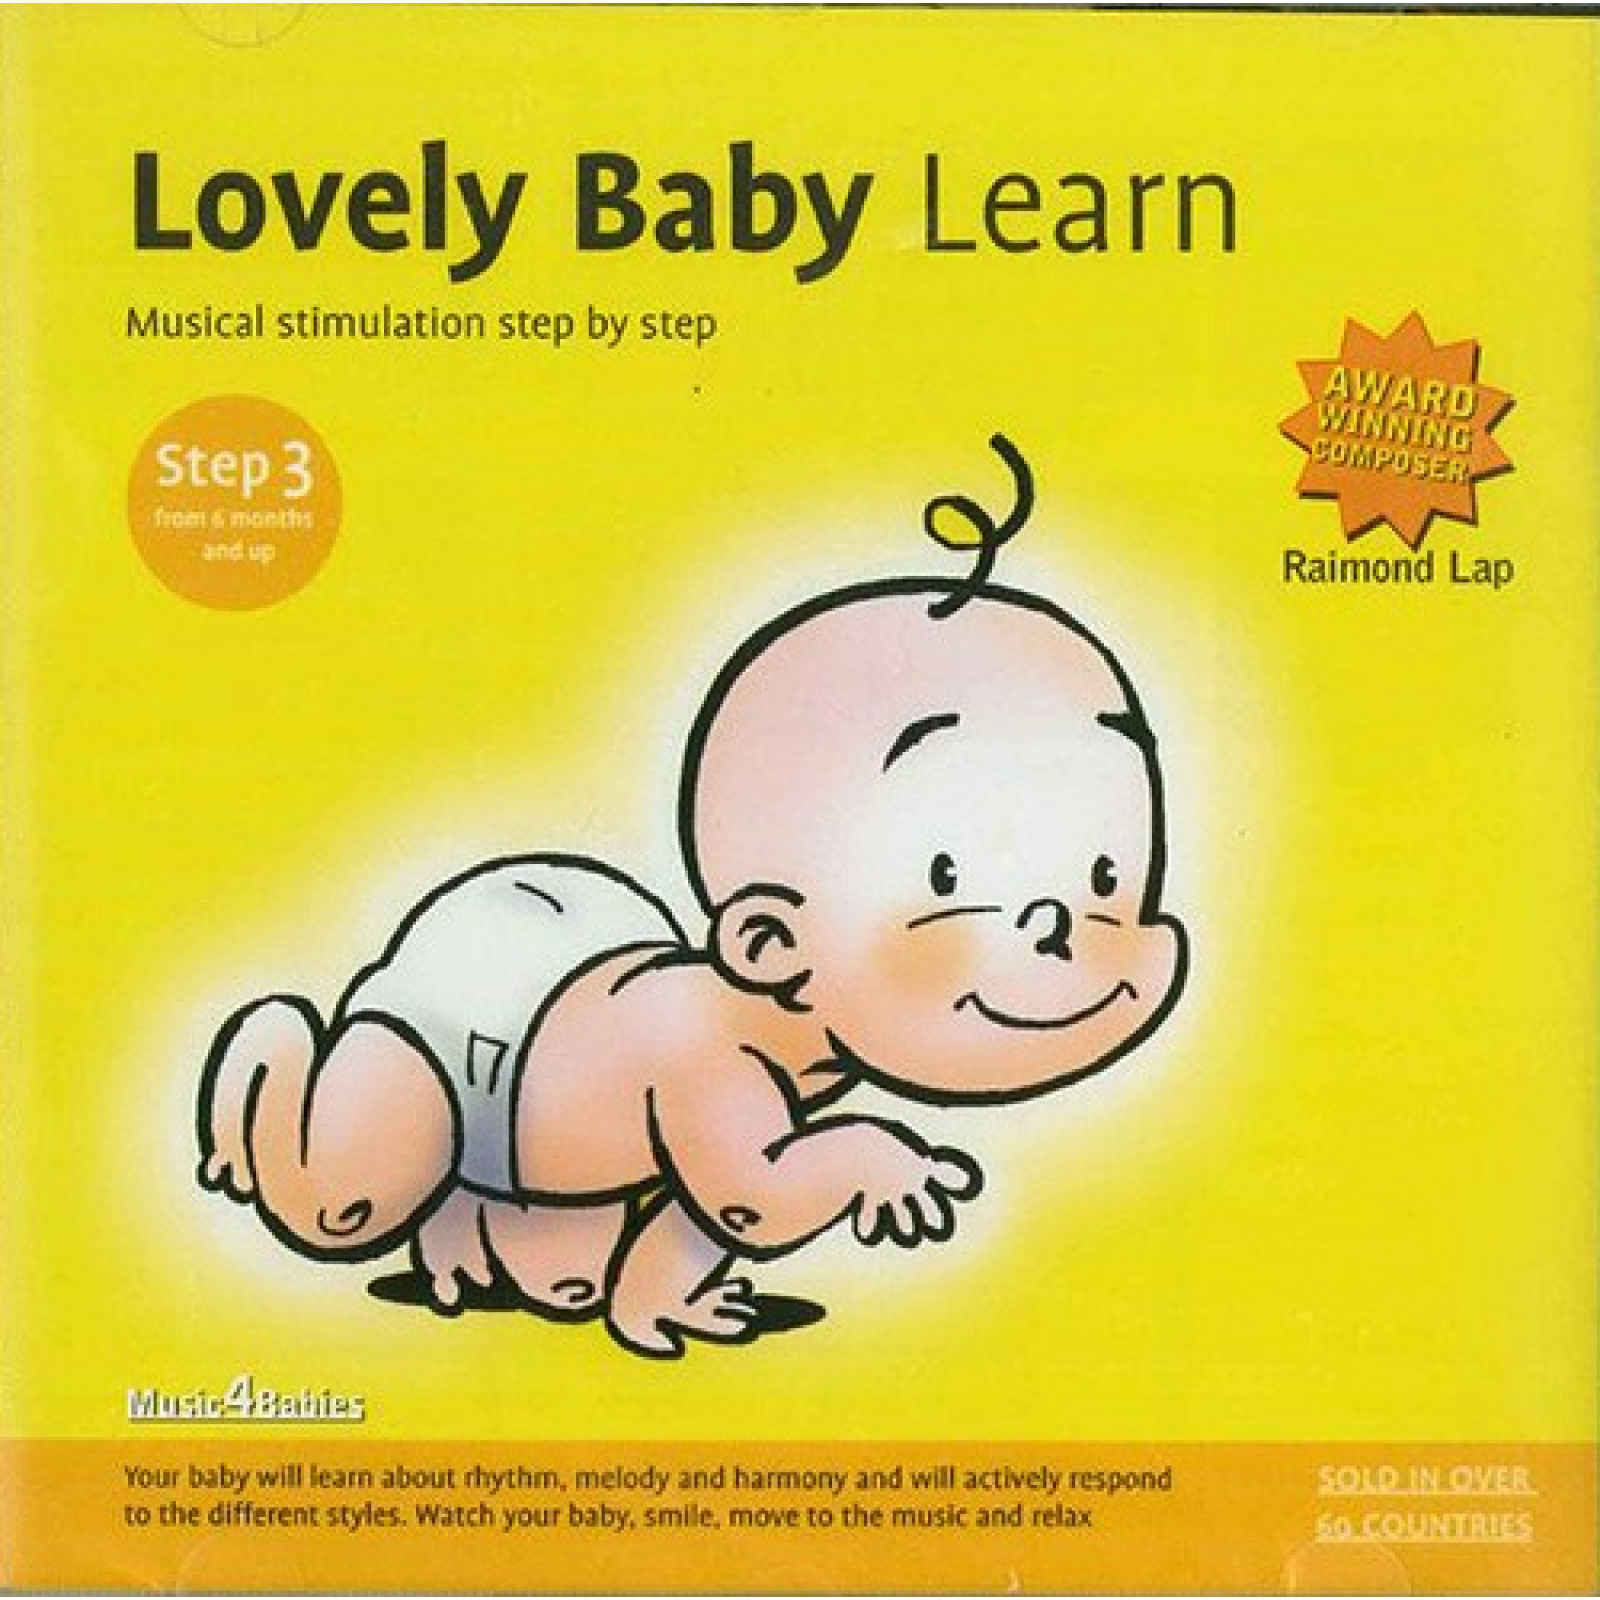 Lovely Baby Learn